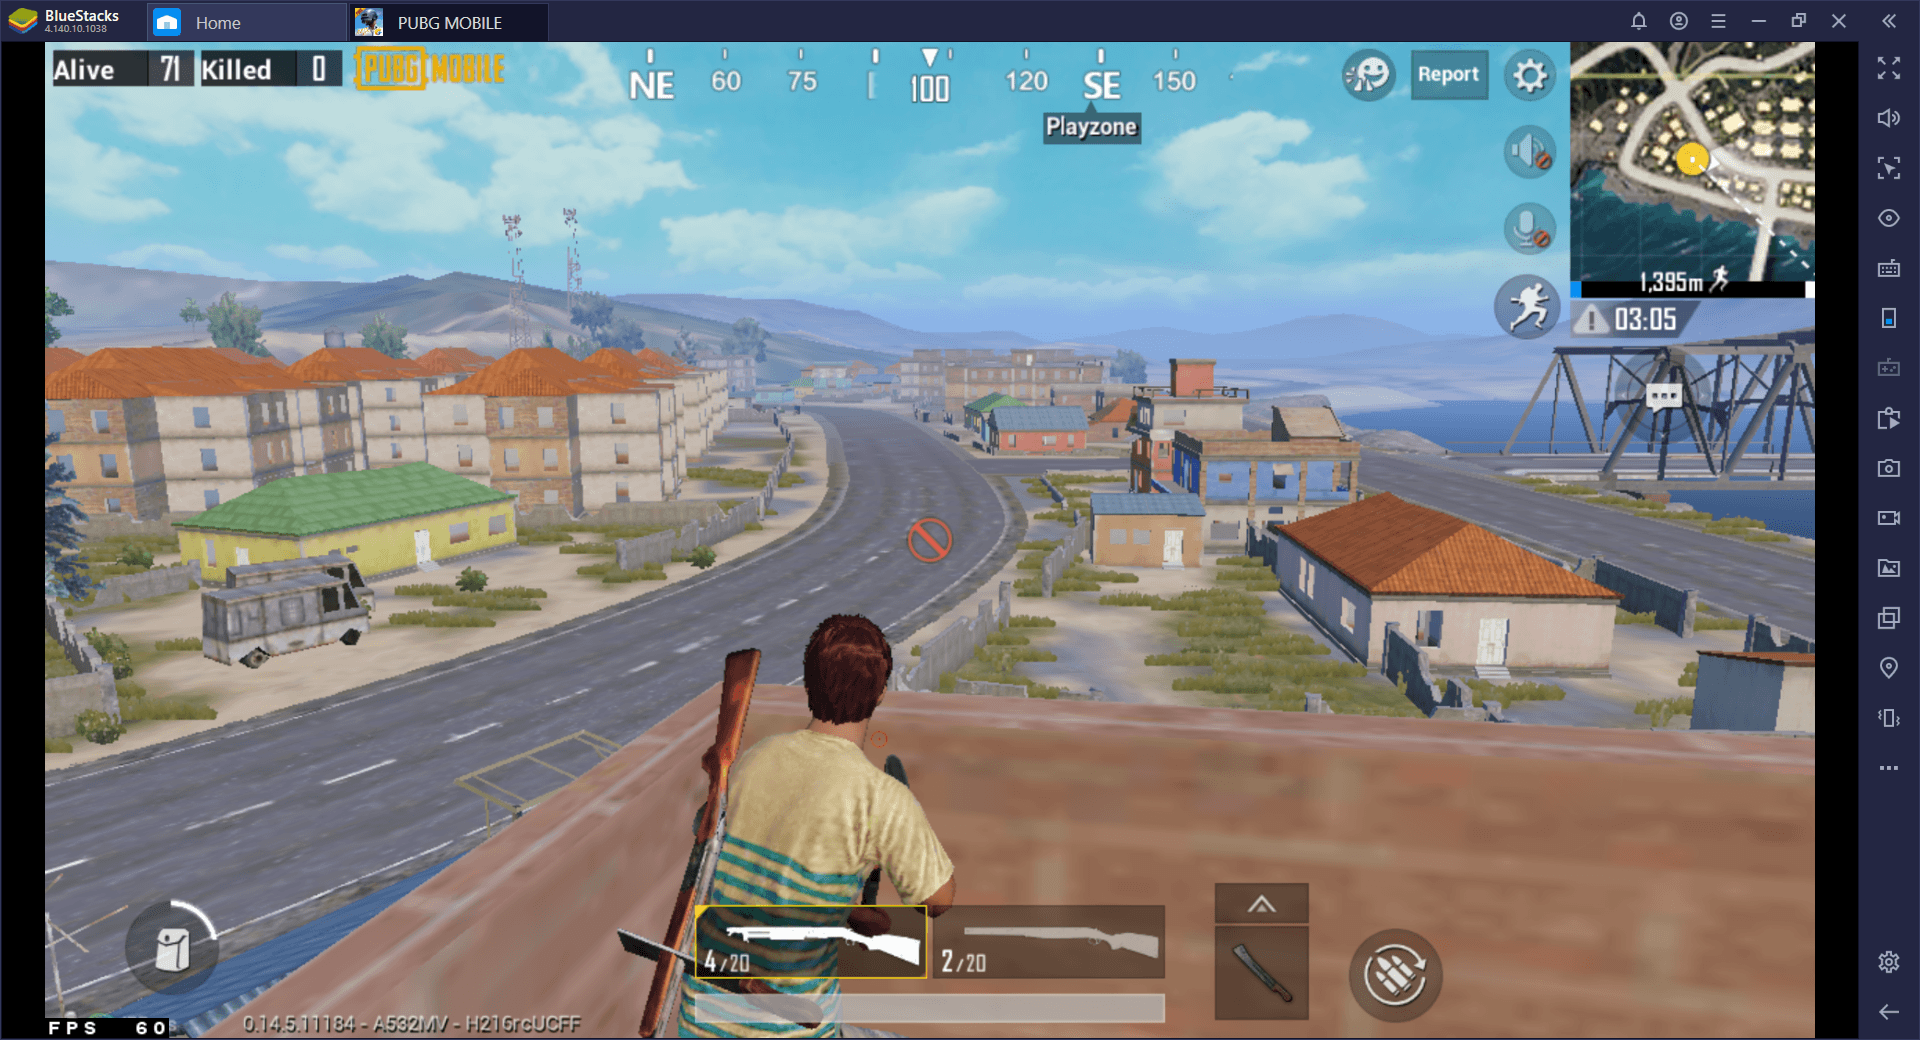 BlueStacks Update: Play PUBG Mobile with Full HD(1080p) / QHD (1440p) Display